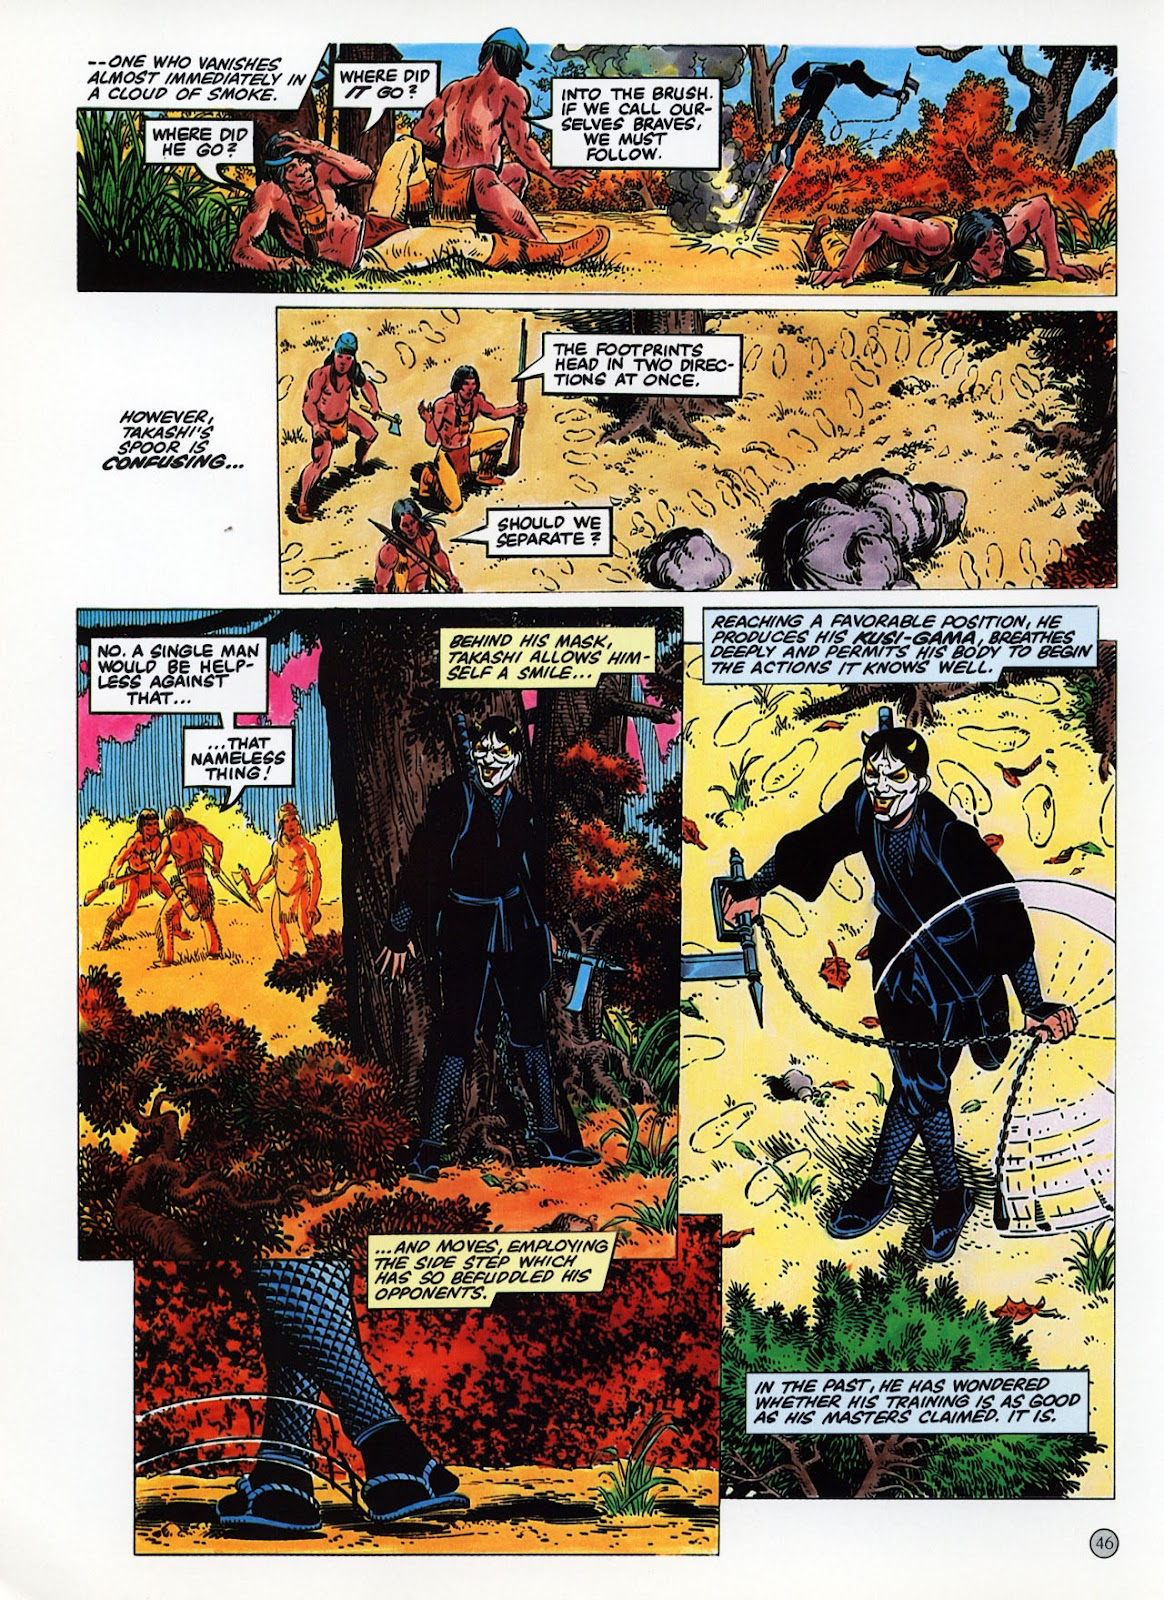 Read online Epic Graphic Novel: Last of the Dragons comic -  Issue # Full - 47